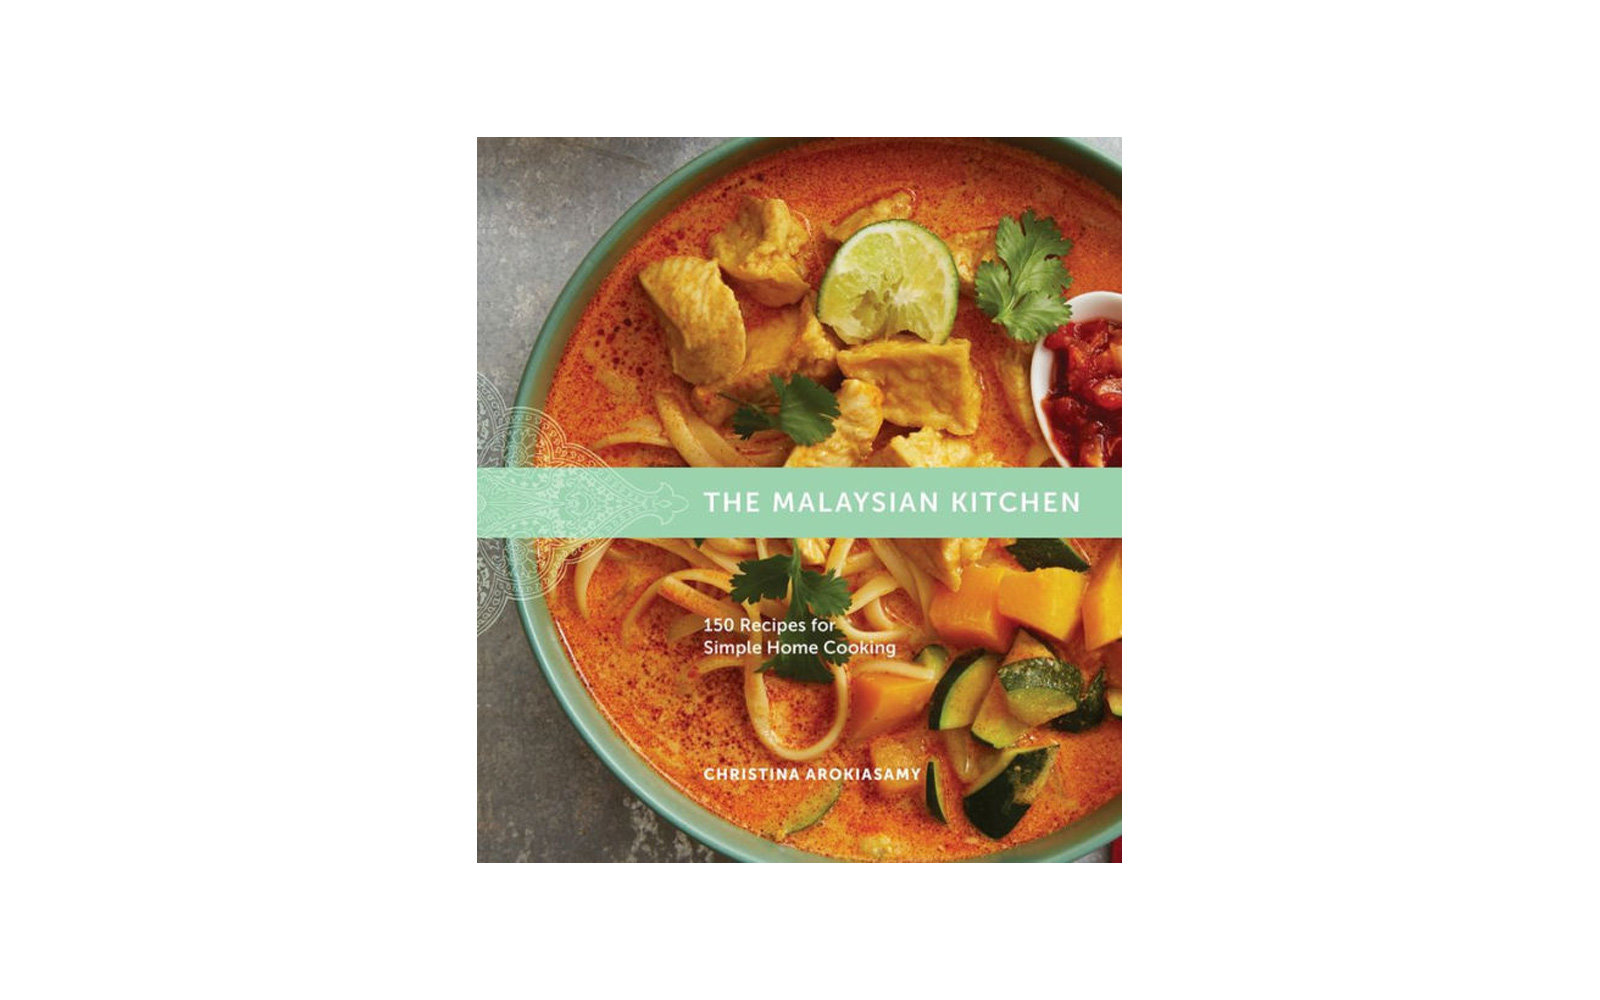 The Malaysian Kitchen, by Christina Arokiasamy